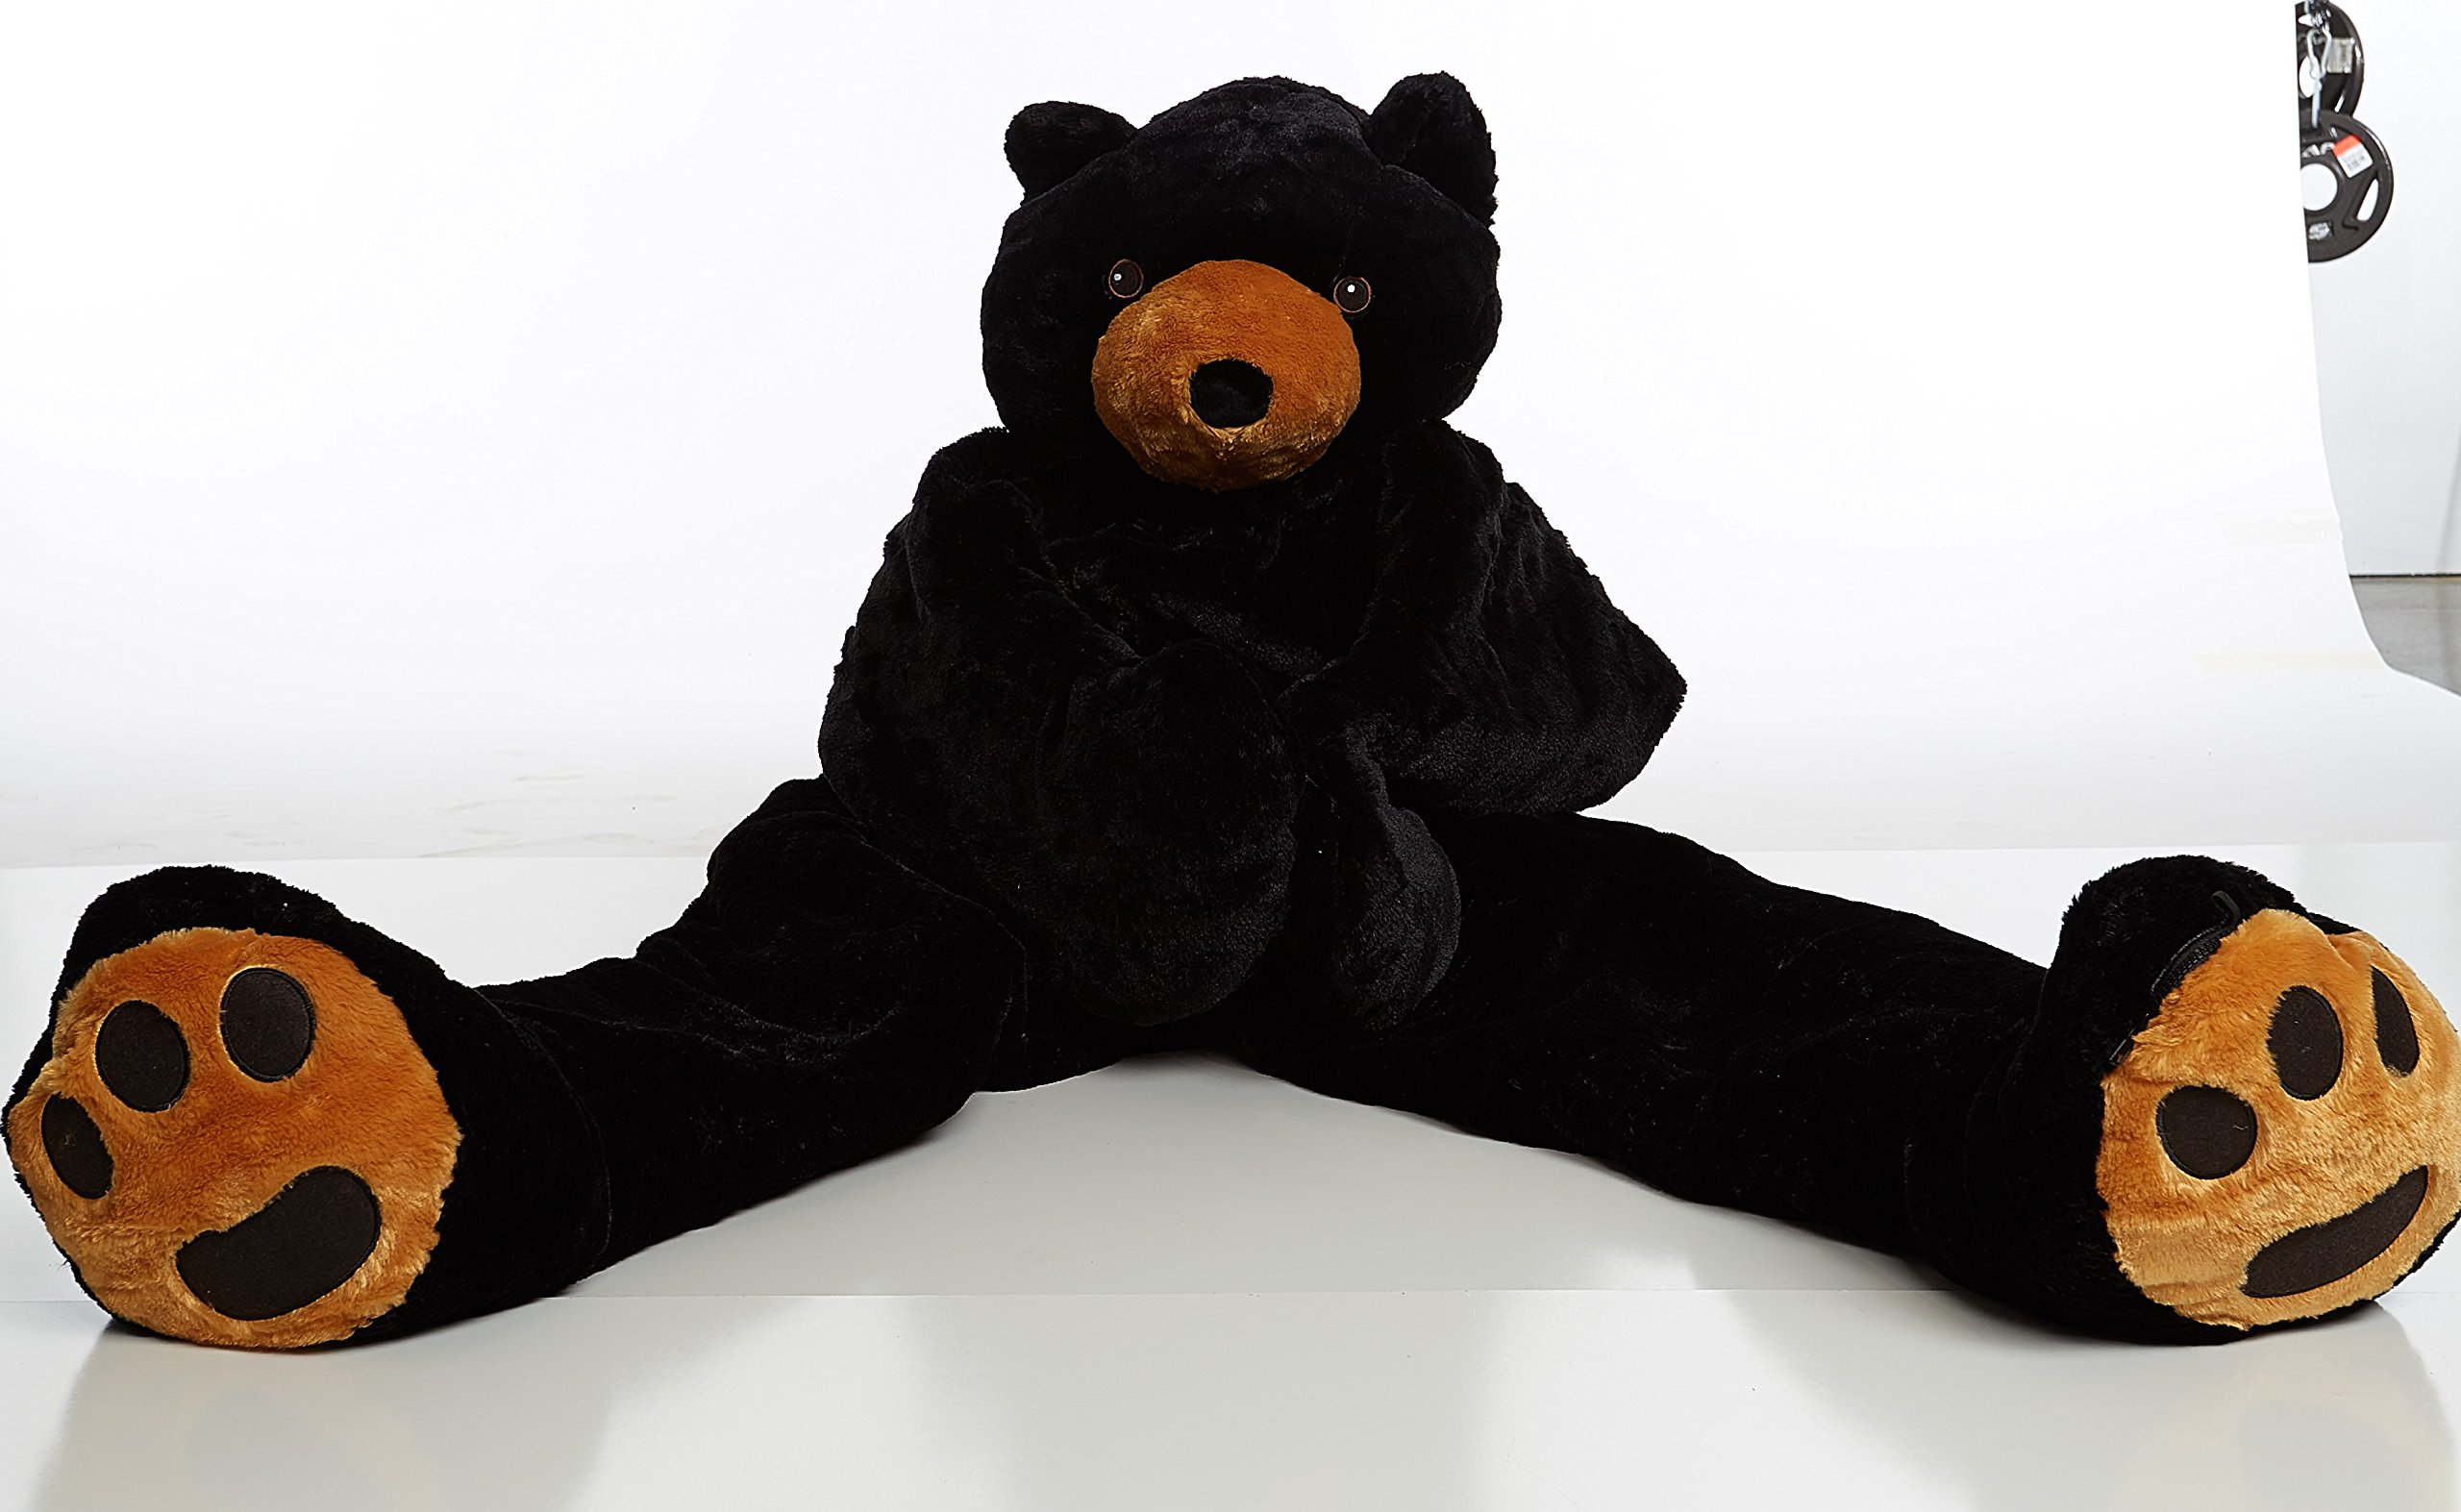 Adult Black Bear SnooZzoo sleeping bag for adults up to 75 inches tall.